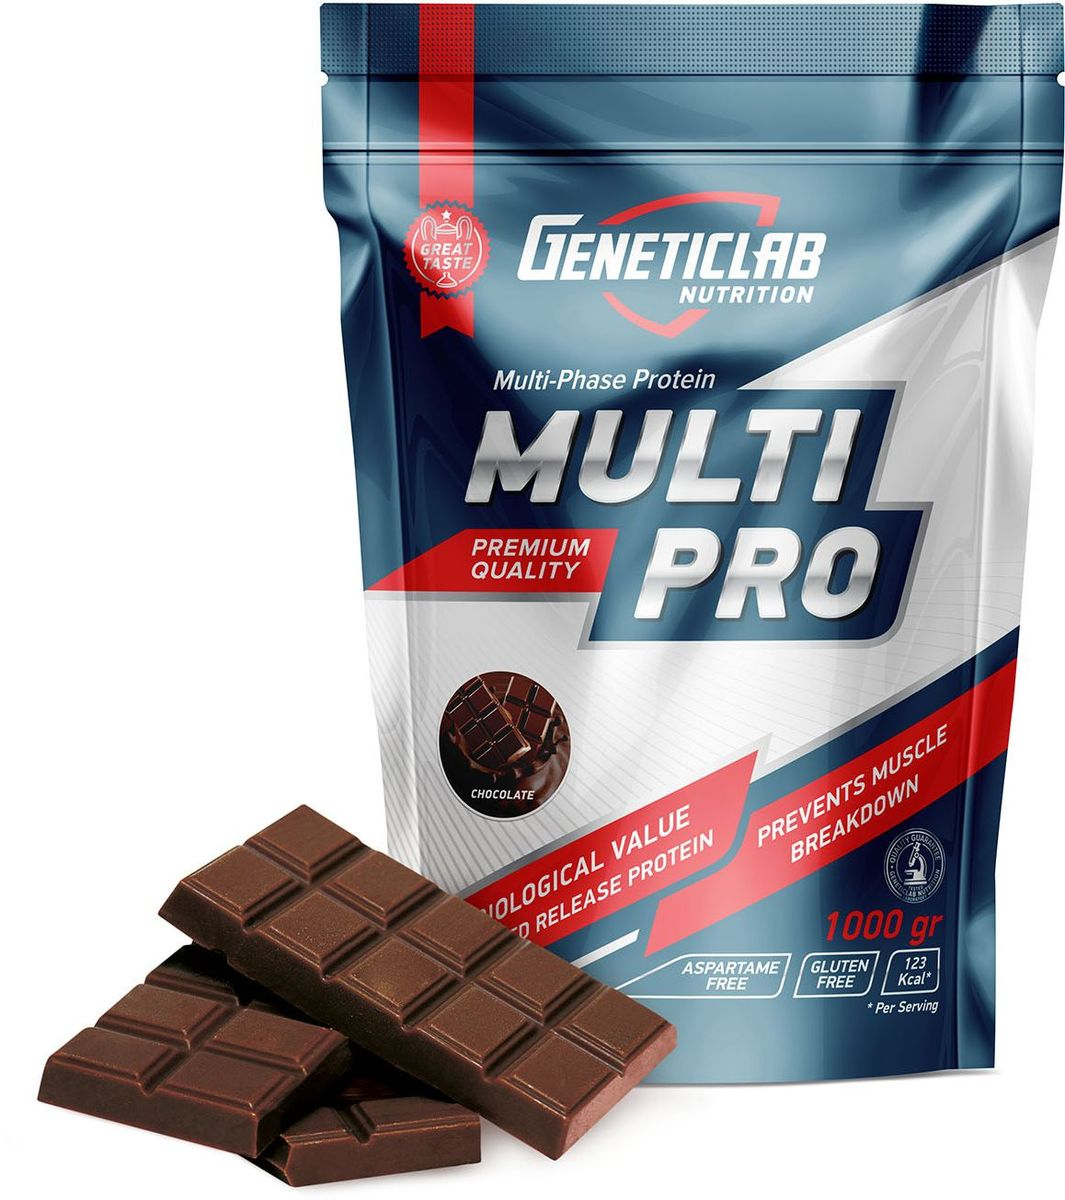 Протеин Geneticlab Multi Pro, шоколад, 1 кг гейнер geneticlab nutrition mass gainer шоколад 1000 г